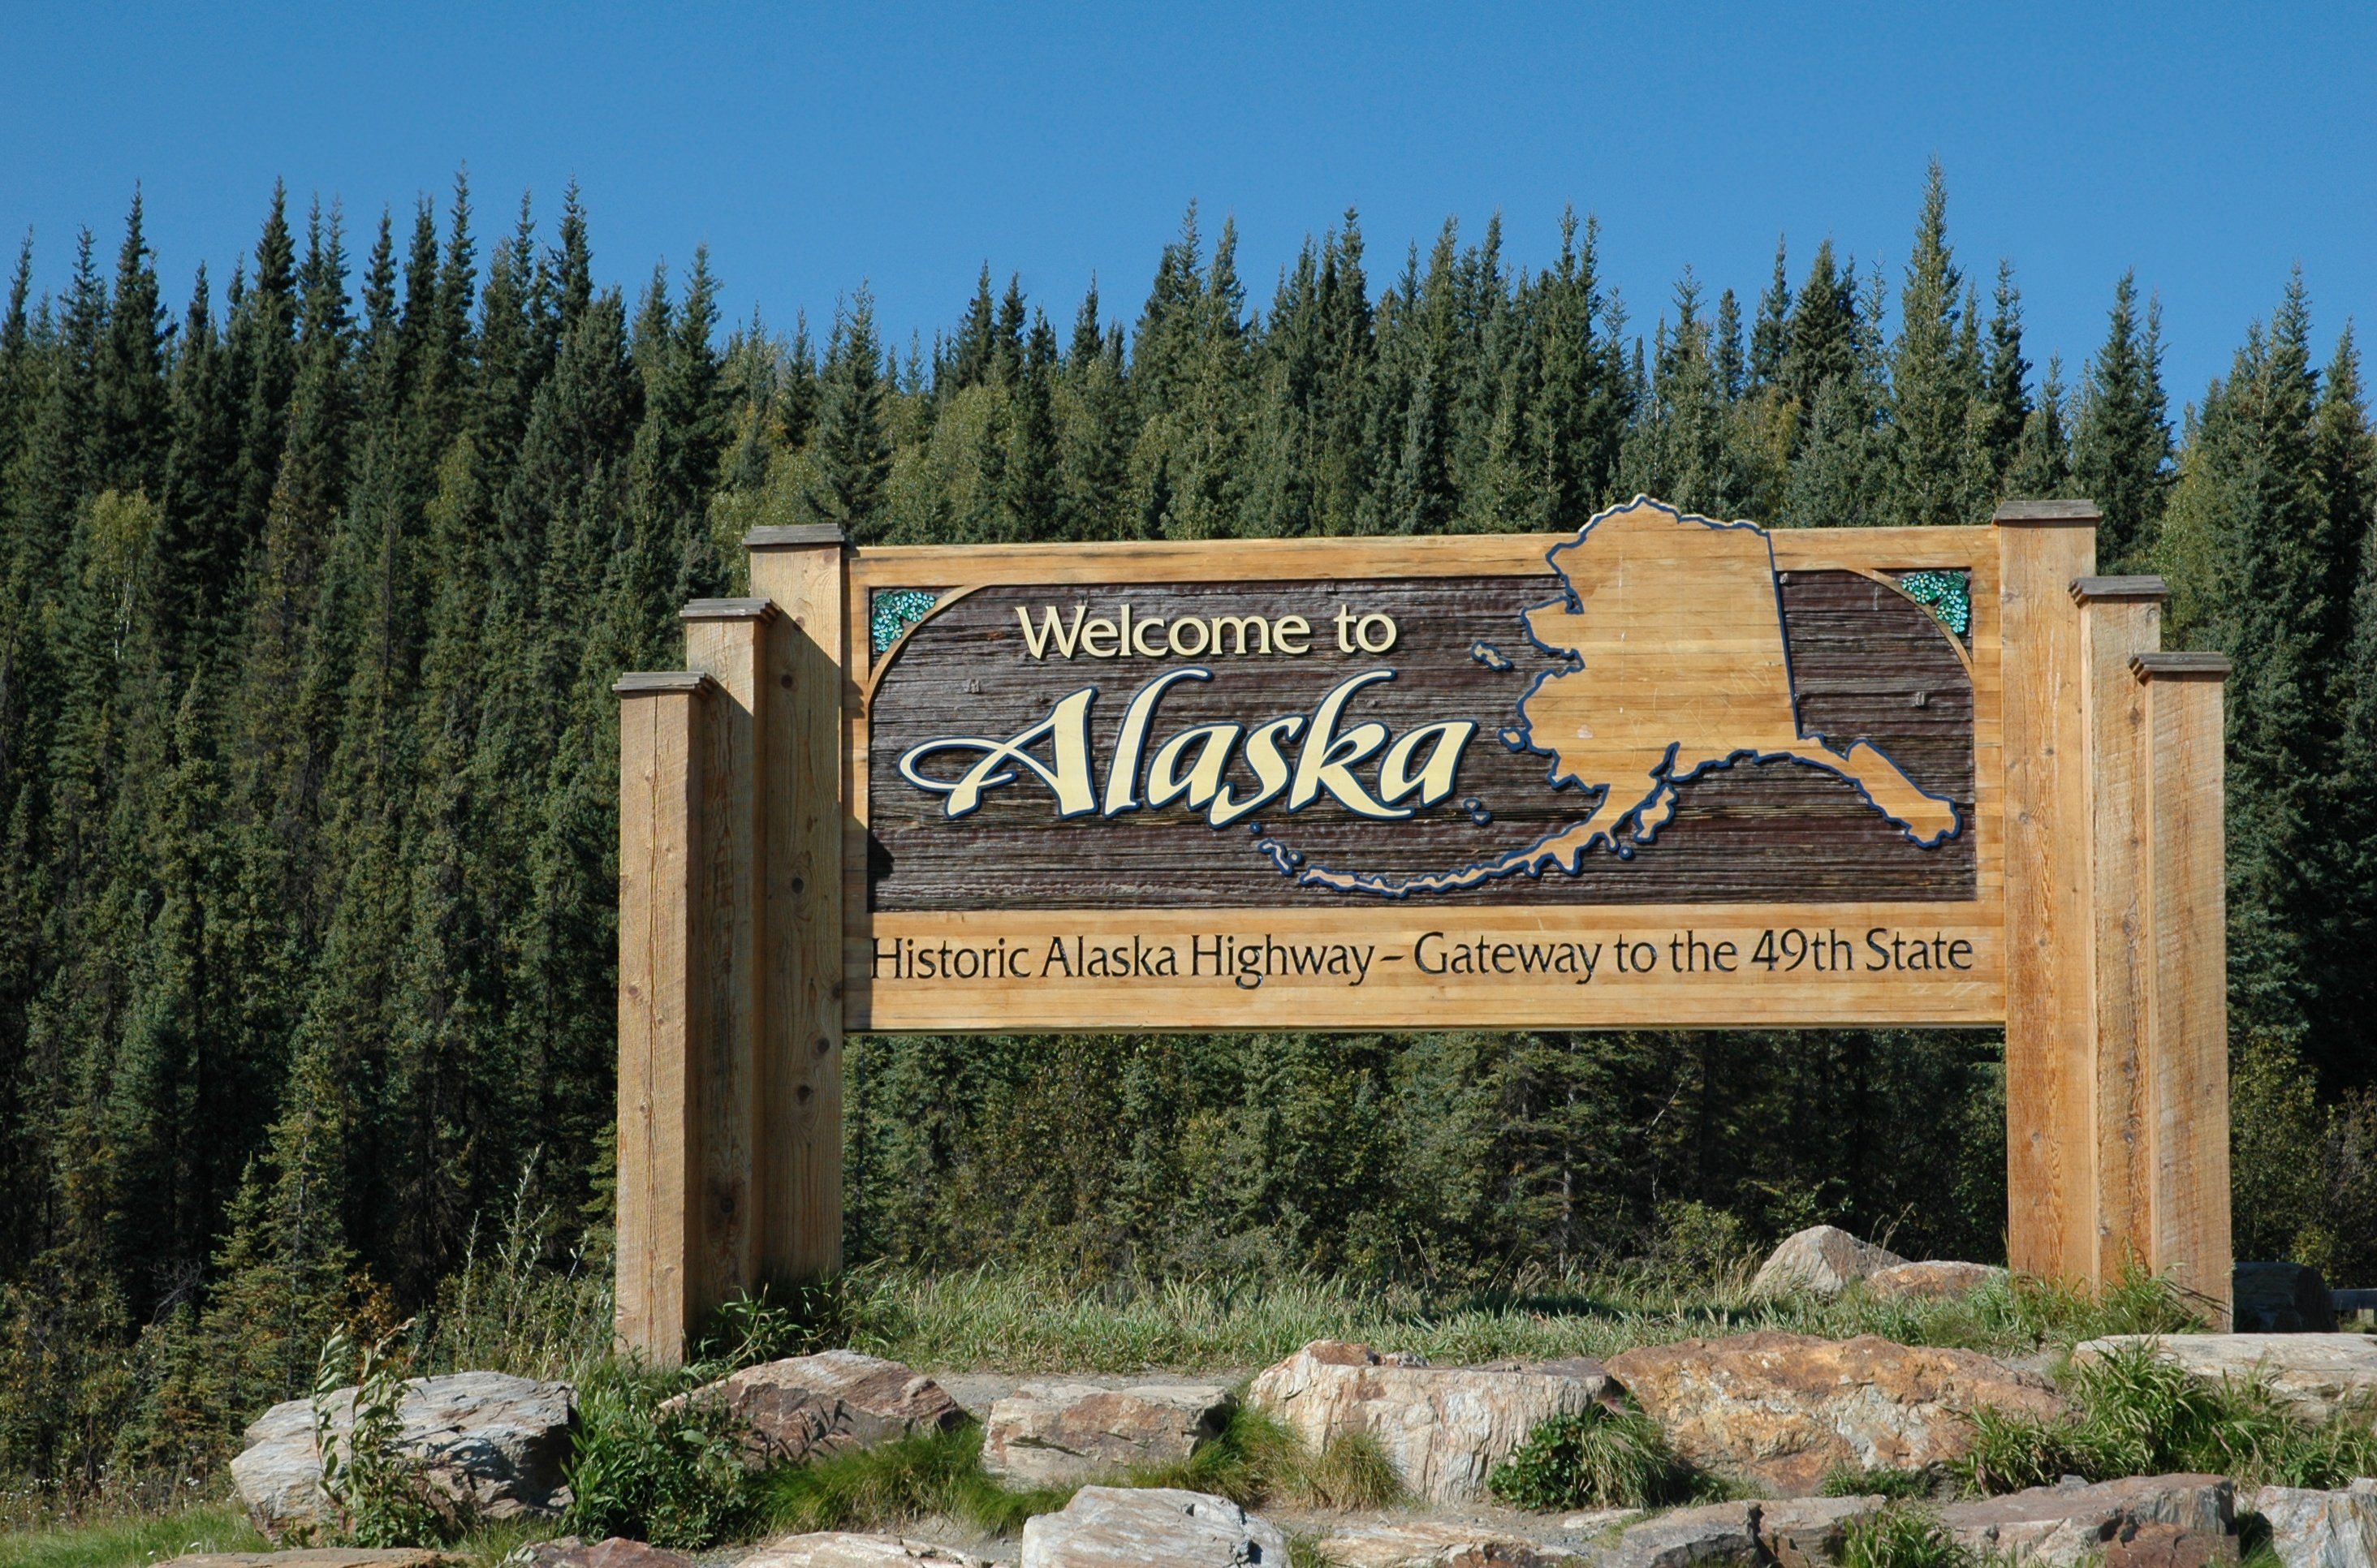 Slide 3 of 51: The state of Alaska is so large that if you could see 1 million acres of the state each day, it would take you an entire year to see everything. Check out this U.S. trivia you never learned in history class.